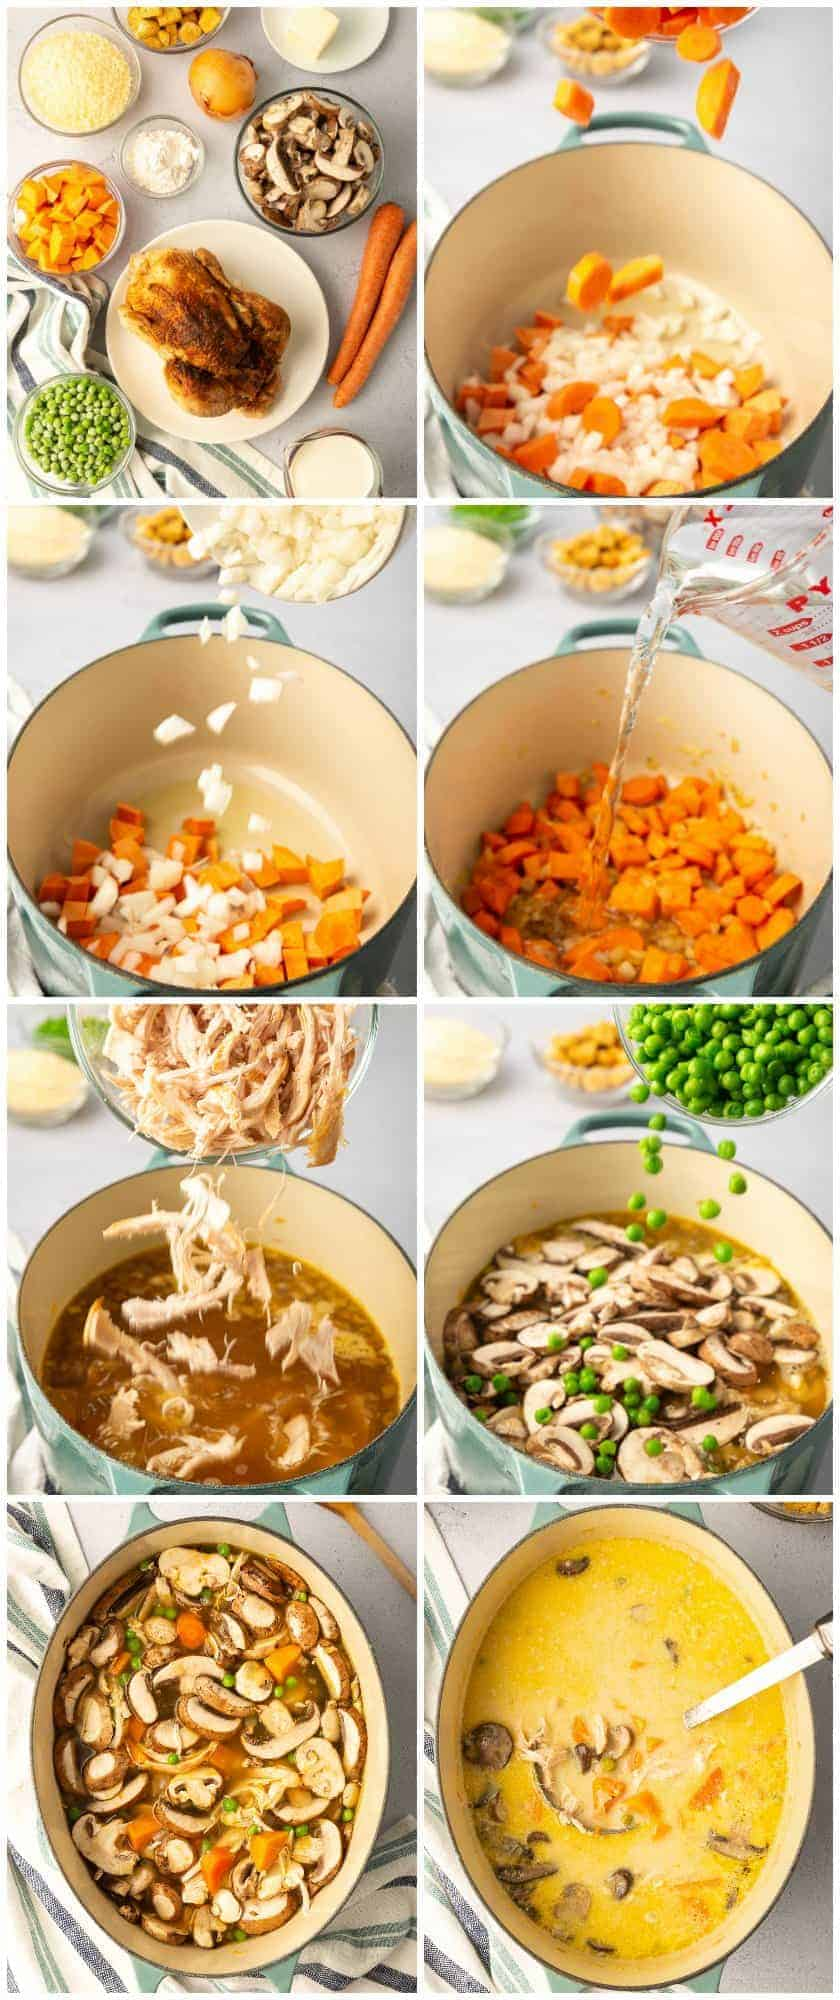 step by step photos of how to make creamy chicken soup